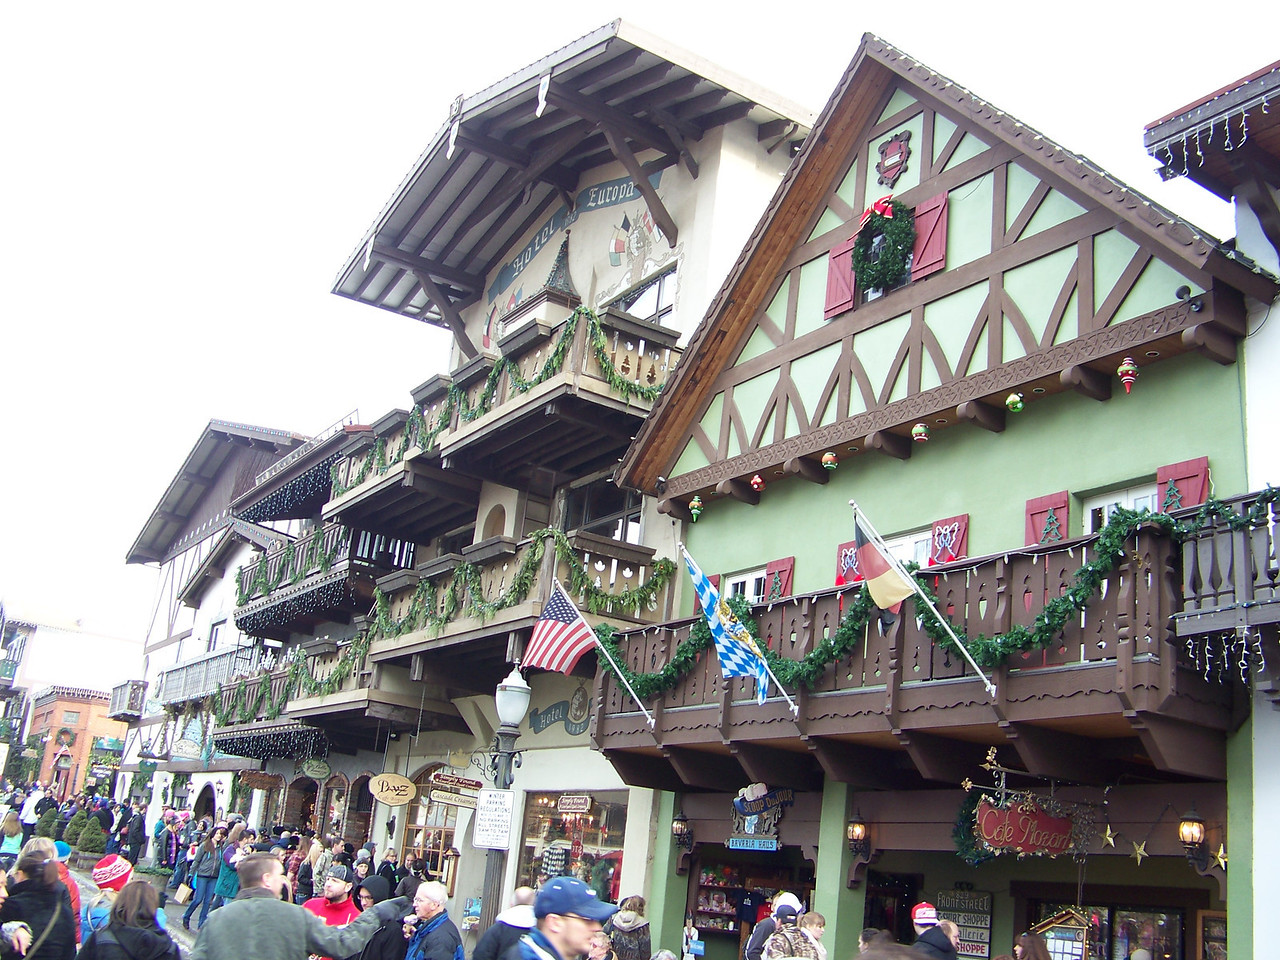 """Some of the stores along Front Street. [Leavenworth, WA - December 2013 - <b><a target=""""_new"""" href=""""http://youtu.be/NqCqDCOY_tc"""">Watch my video here</a></b>]"""